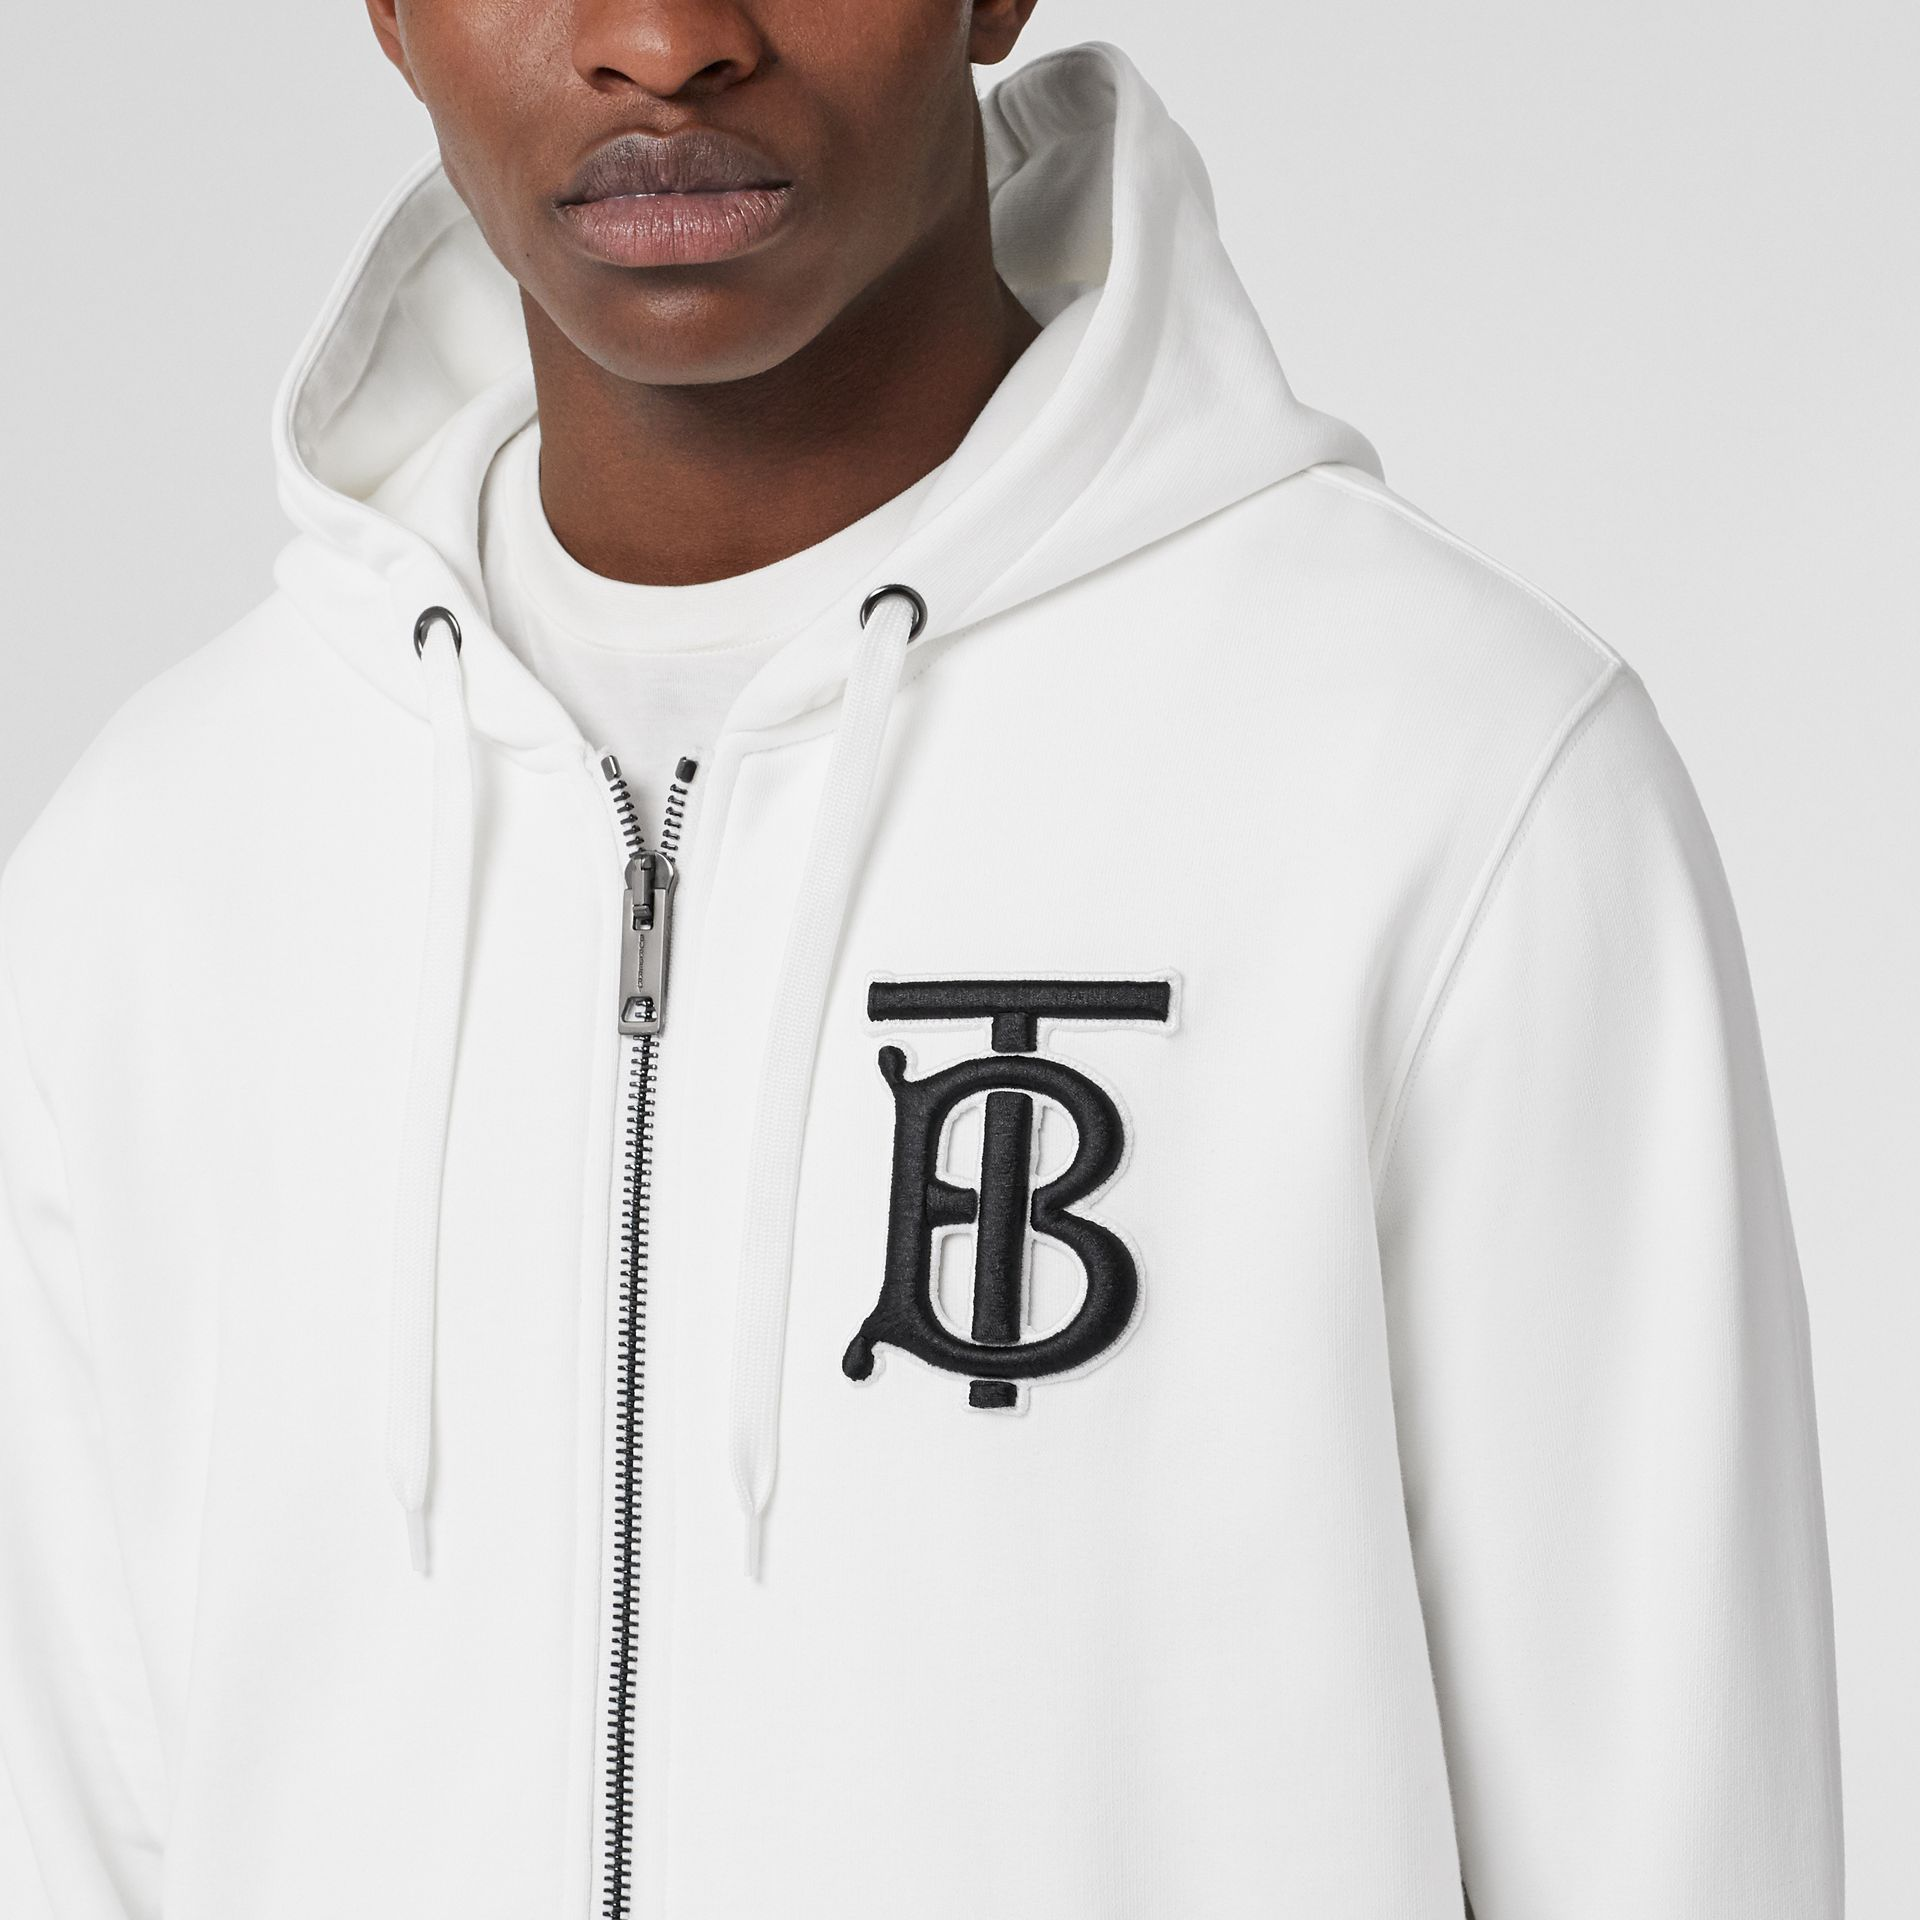 Monogram Motif Cotton Hooded Top in White - Men | Burberry United Kingdom - gallery image 1